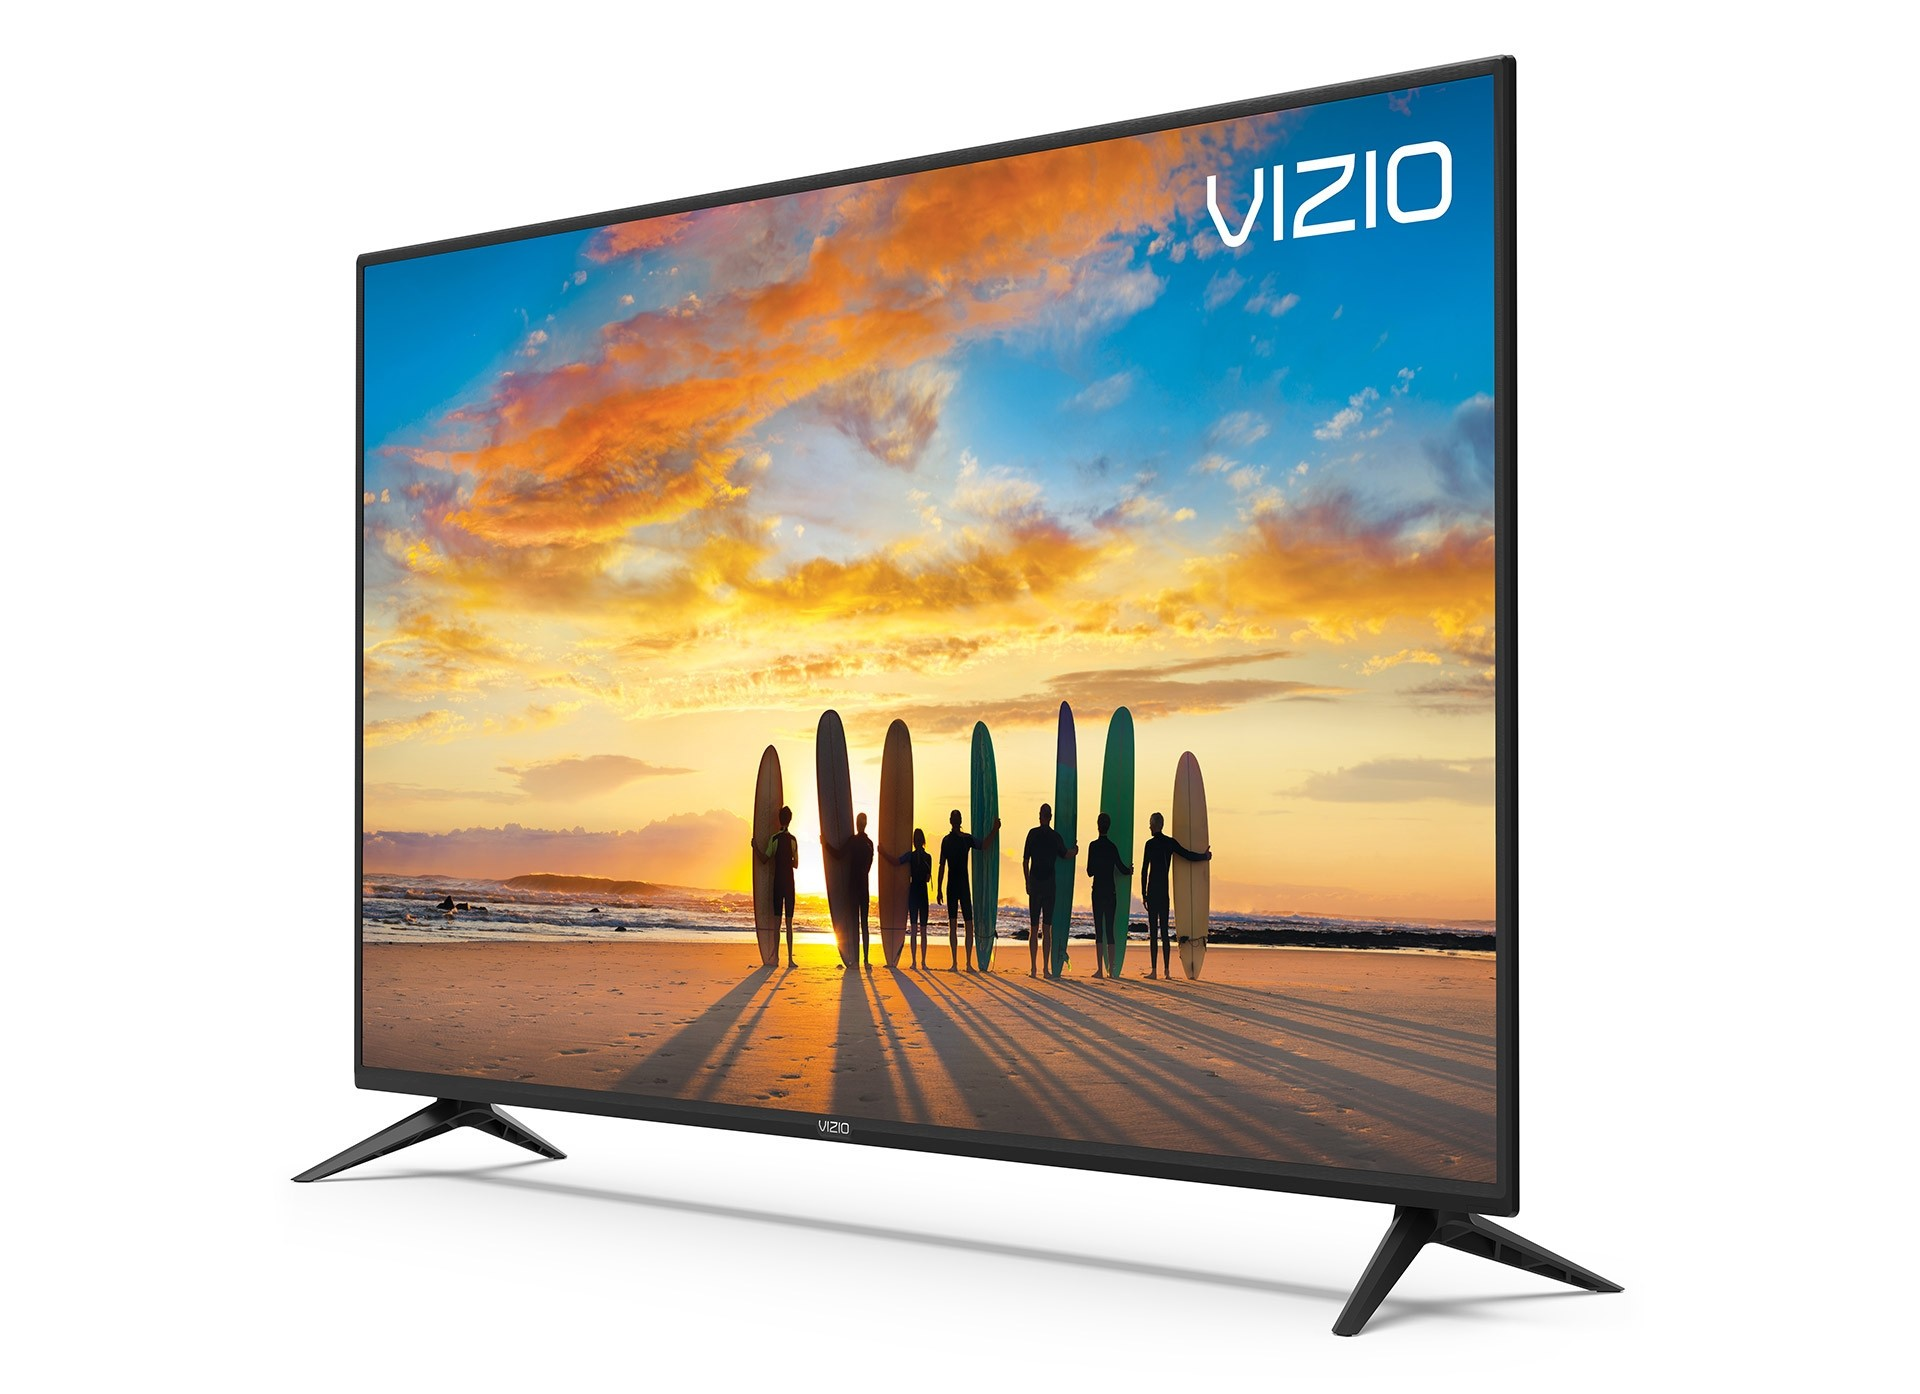 5 Pallets of HDTVs (Cracked/Broken Screens) by LG, Vizio & More, (Lot S_6847), Ext. Retail $10,980, Rocky Mount, NC